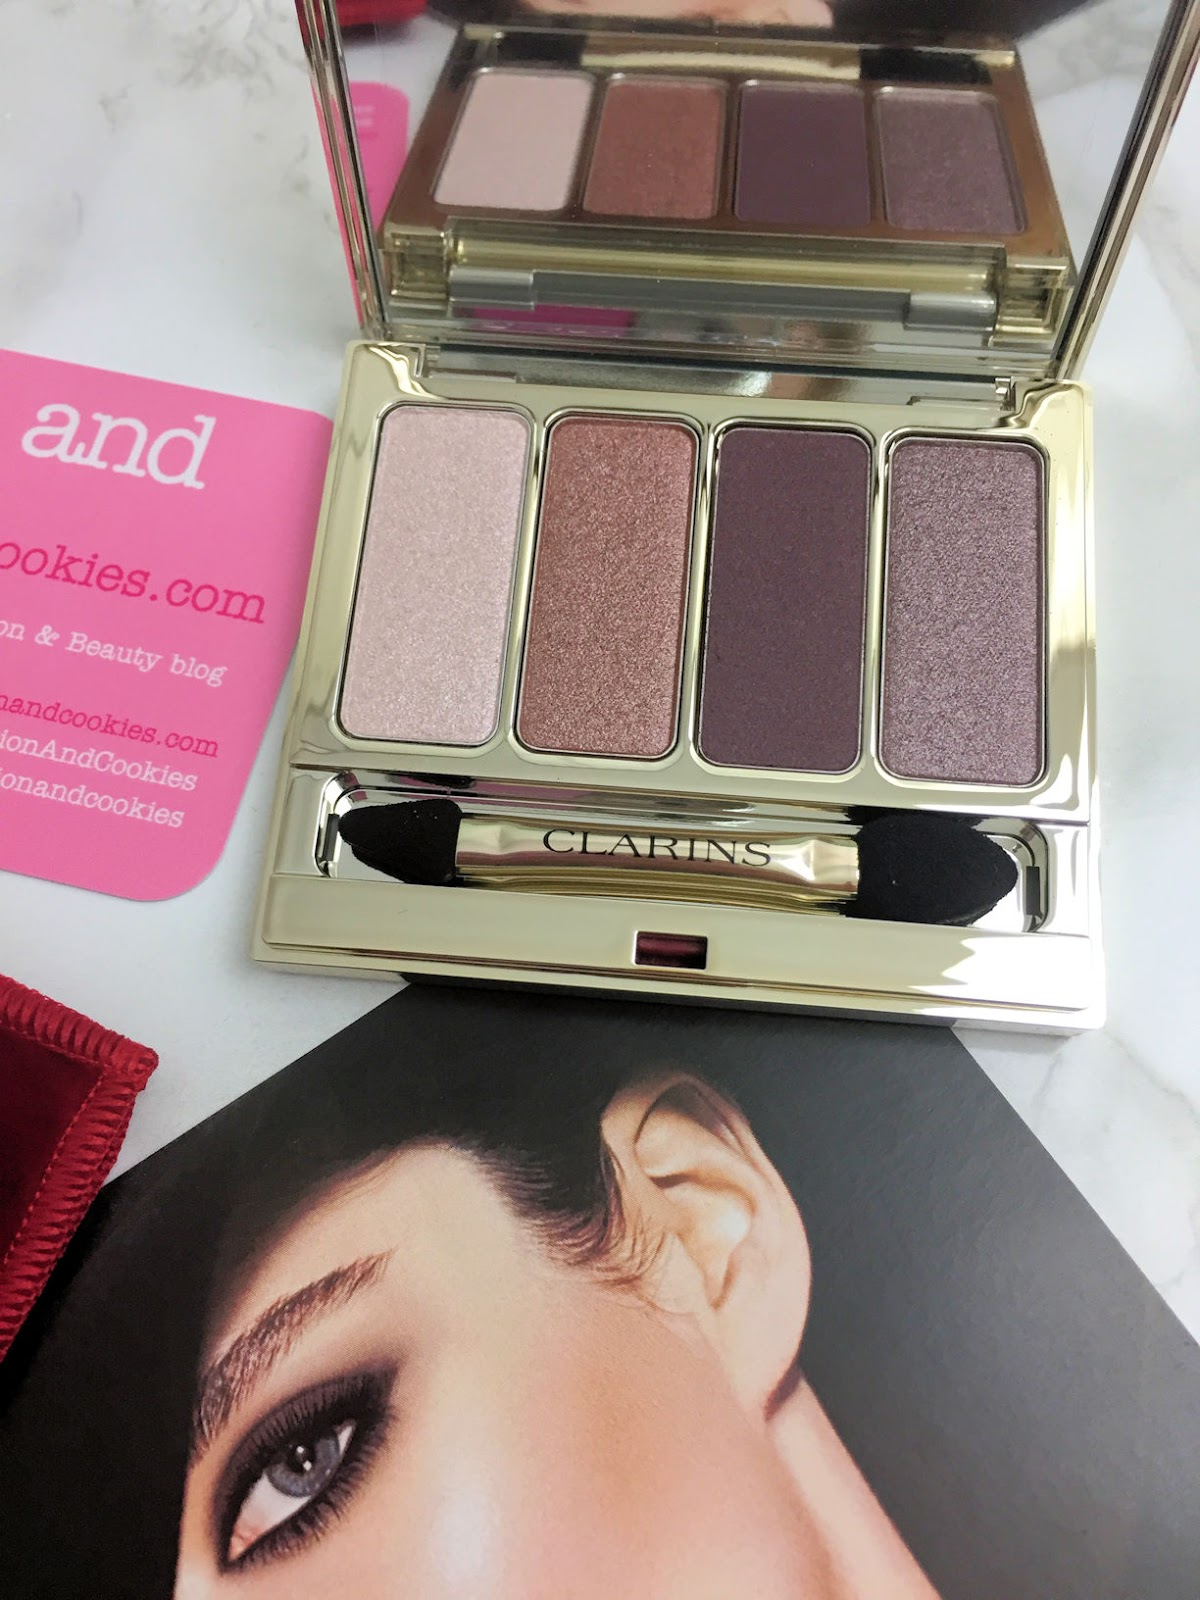 Clarins 4-couleurs eyeshadow palette on Fashion and Cookies beauty blog, beauty blogger